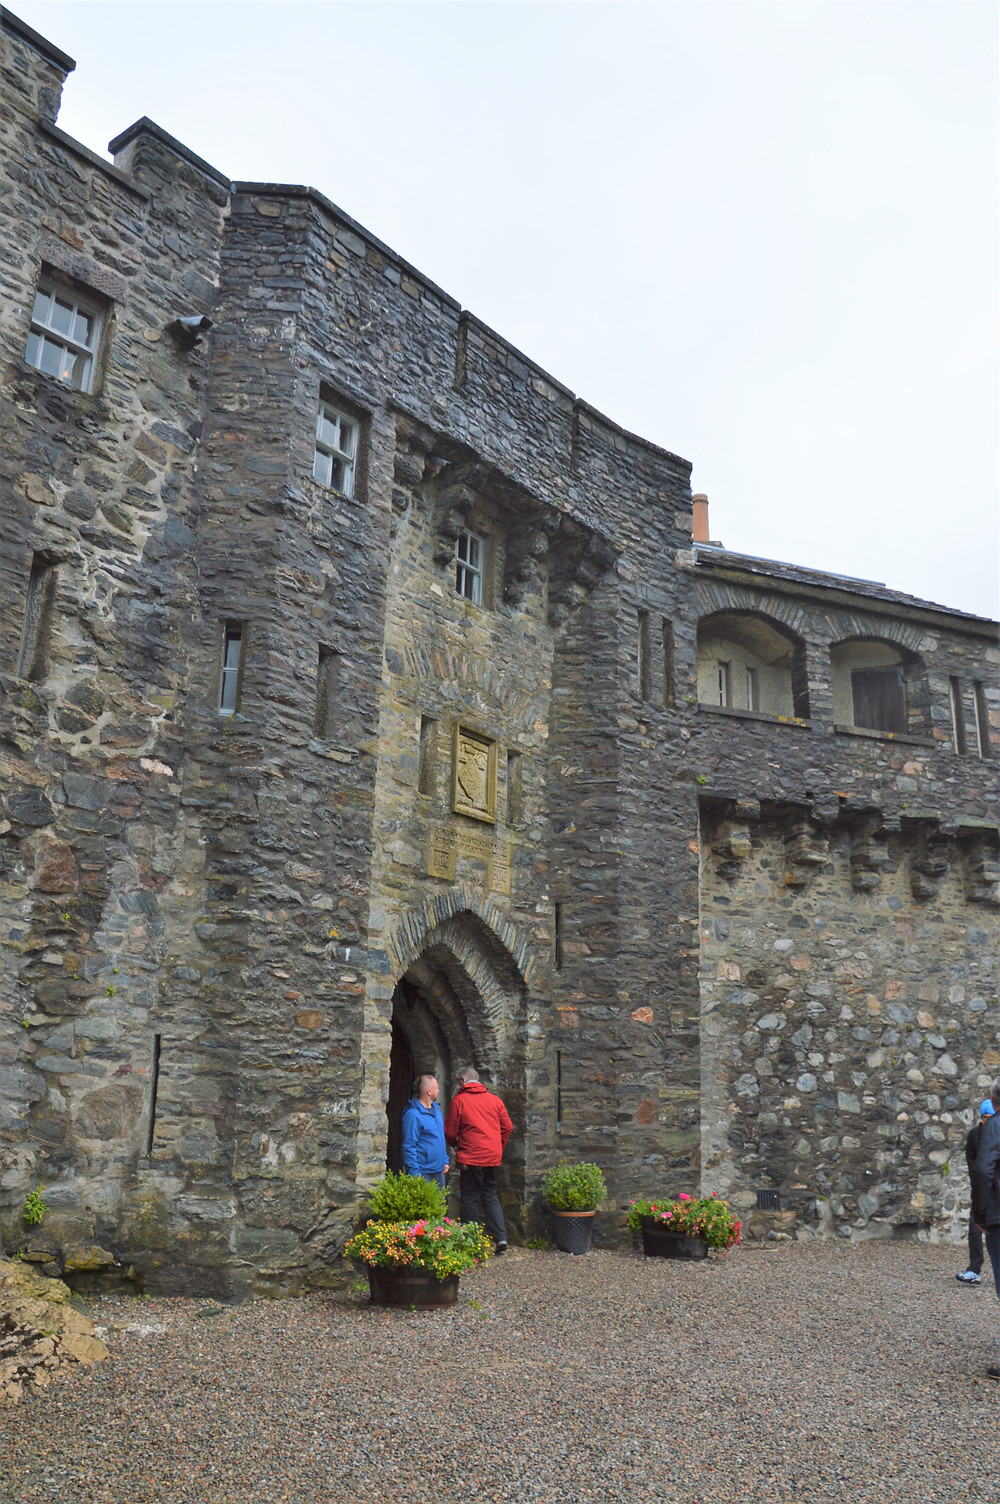 Access to the interior of the Eilean Donan Castle was controlled through a portal with a portculli